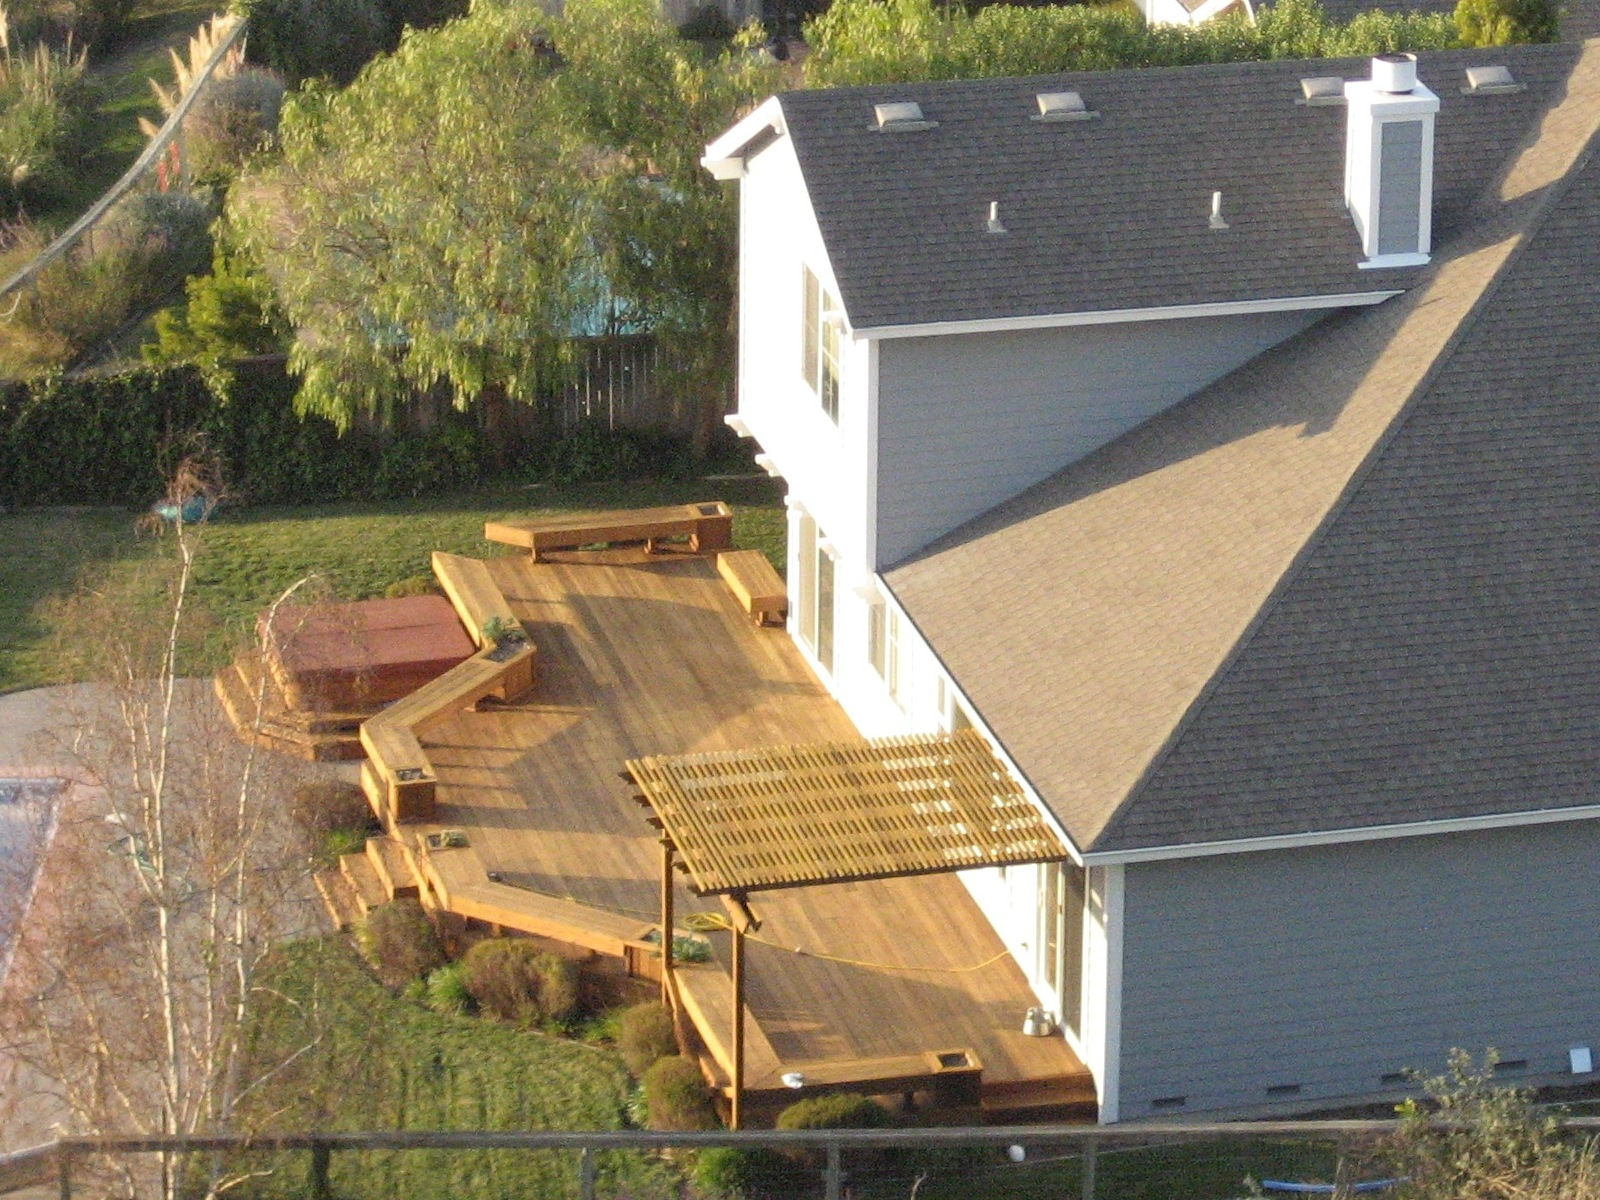 simple wood deck plans simple deck ideas outdoor wood deck designs ideas simple  deck designs basic